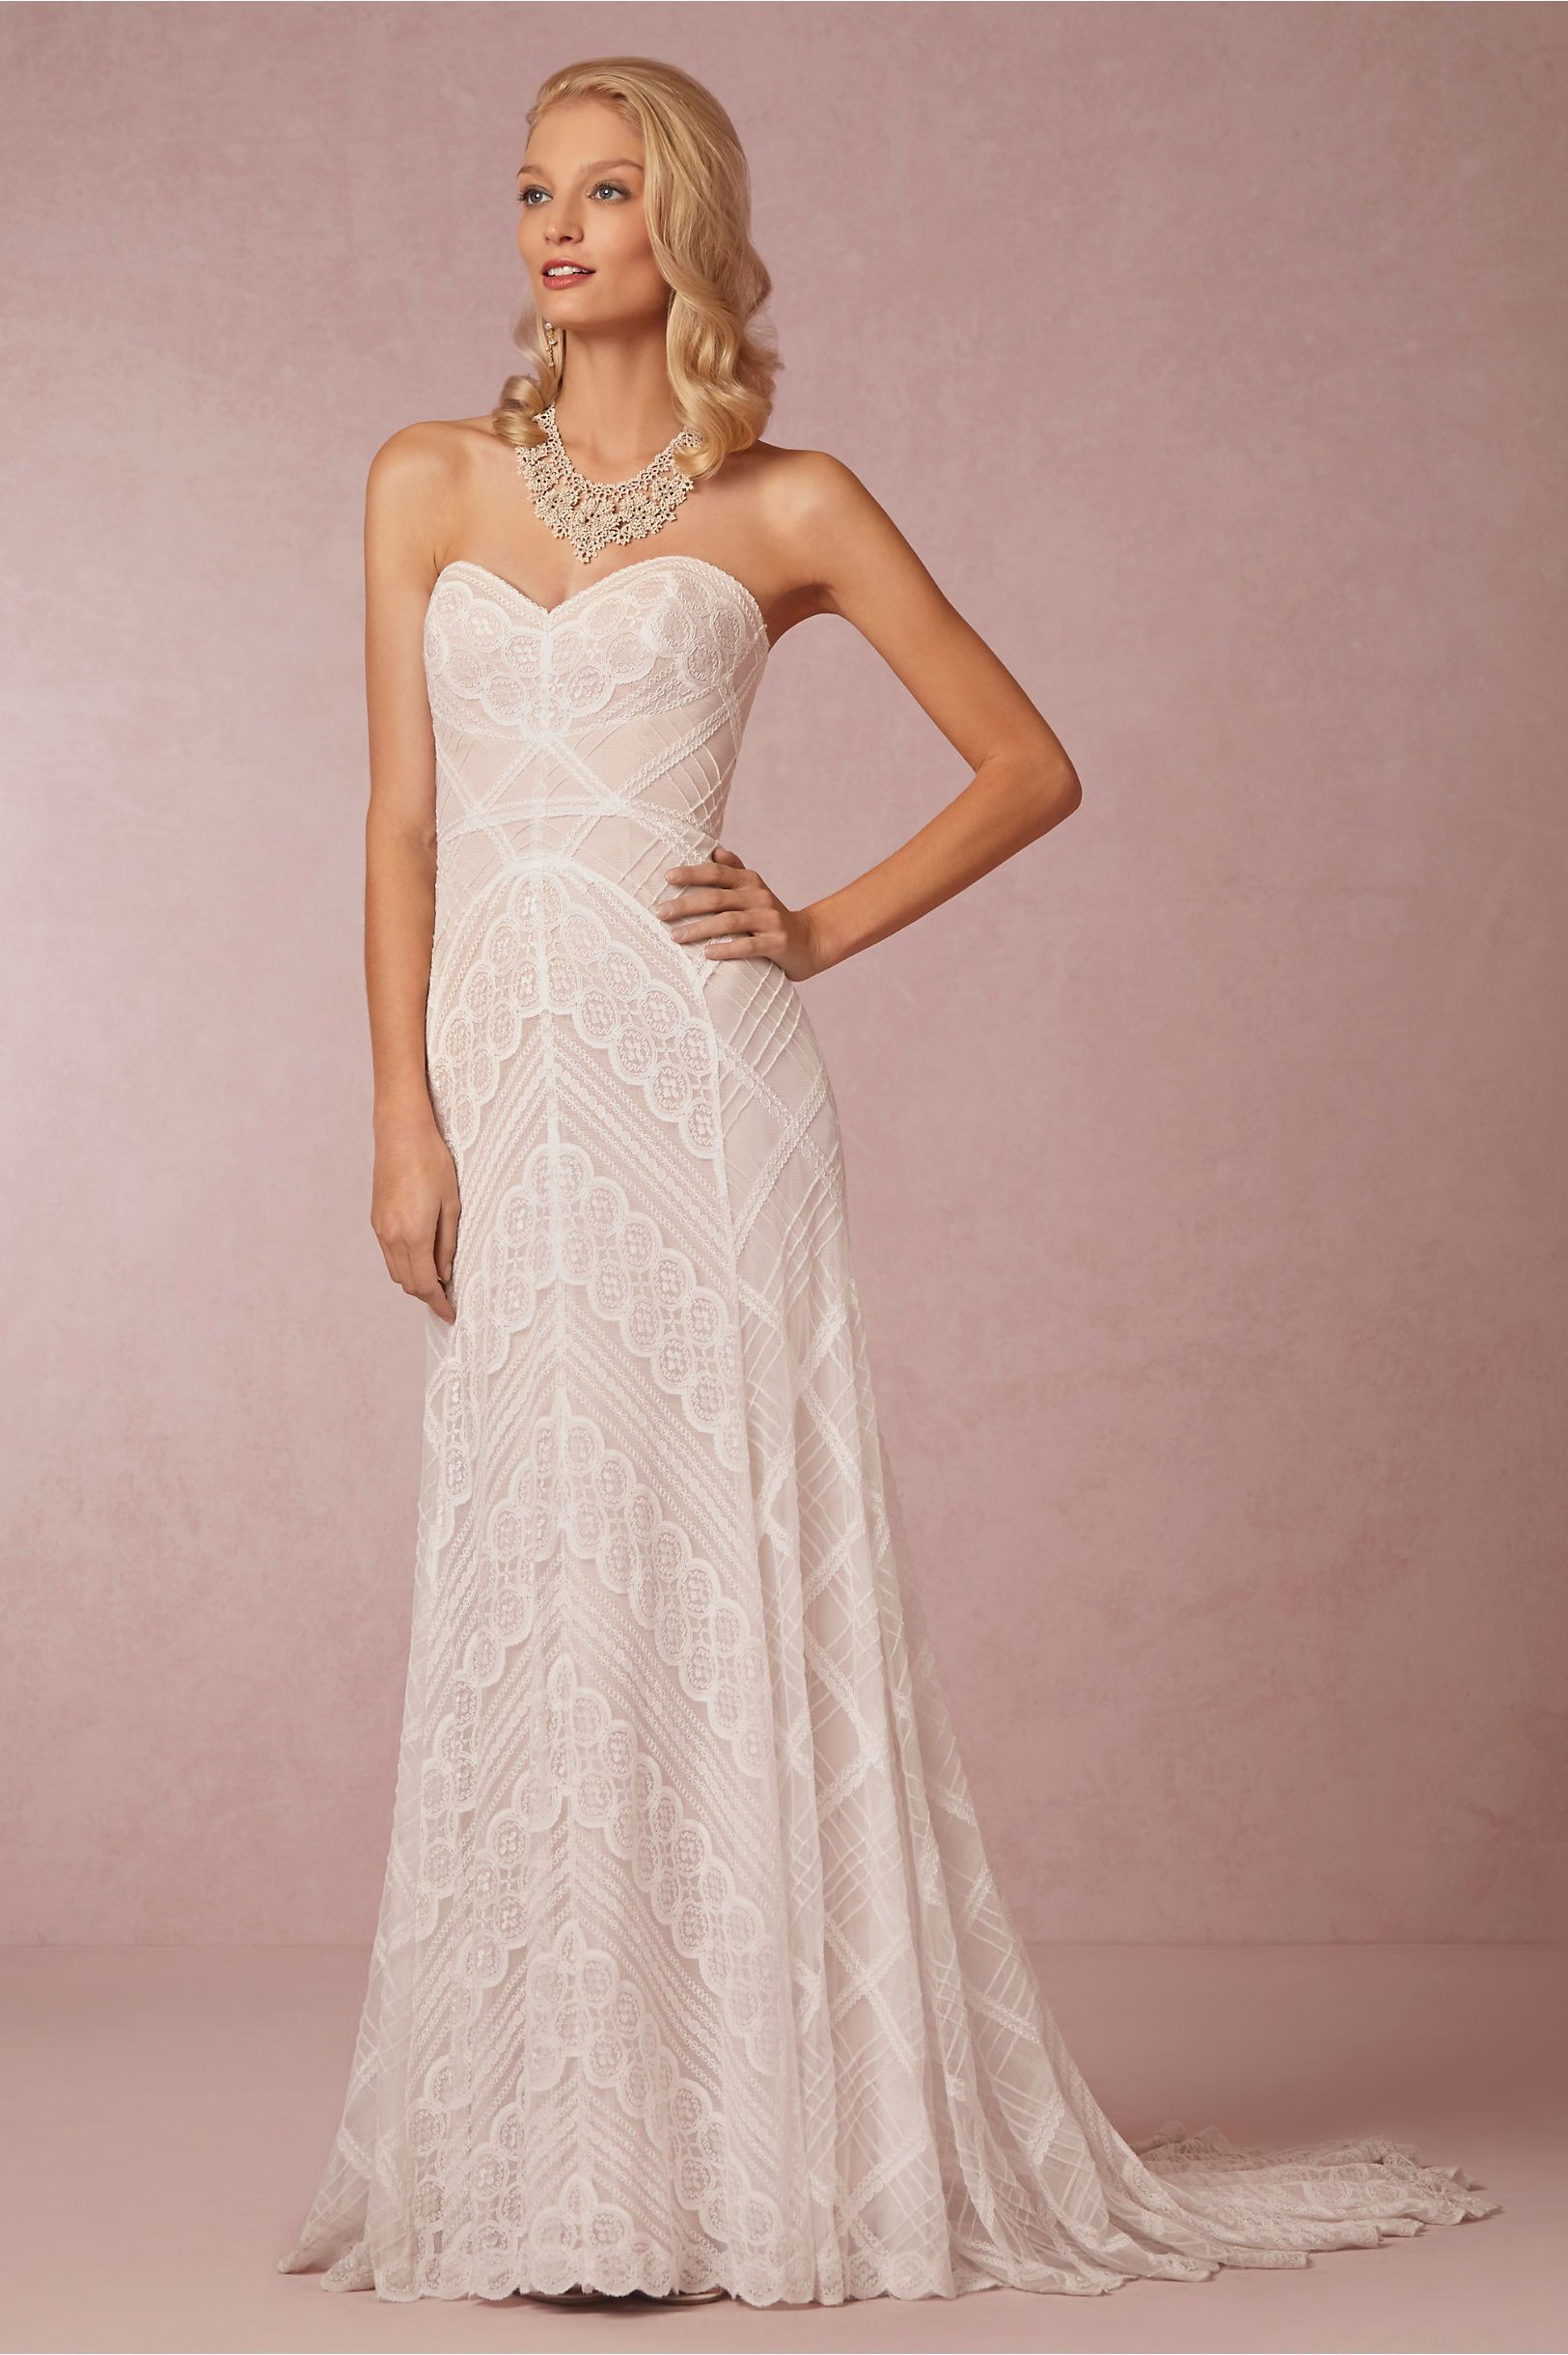 Patterns for wedding dresses  Pricey but wanted to bring your attention to the pretty stuff BHLDN